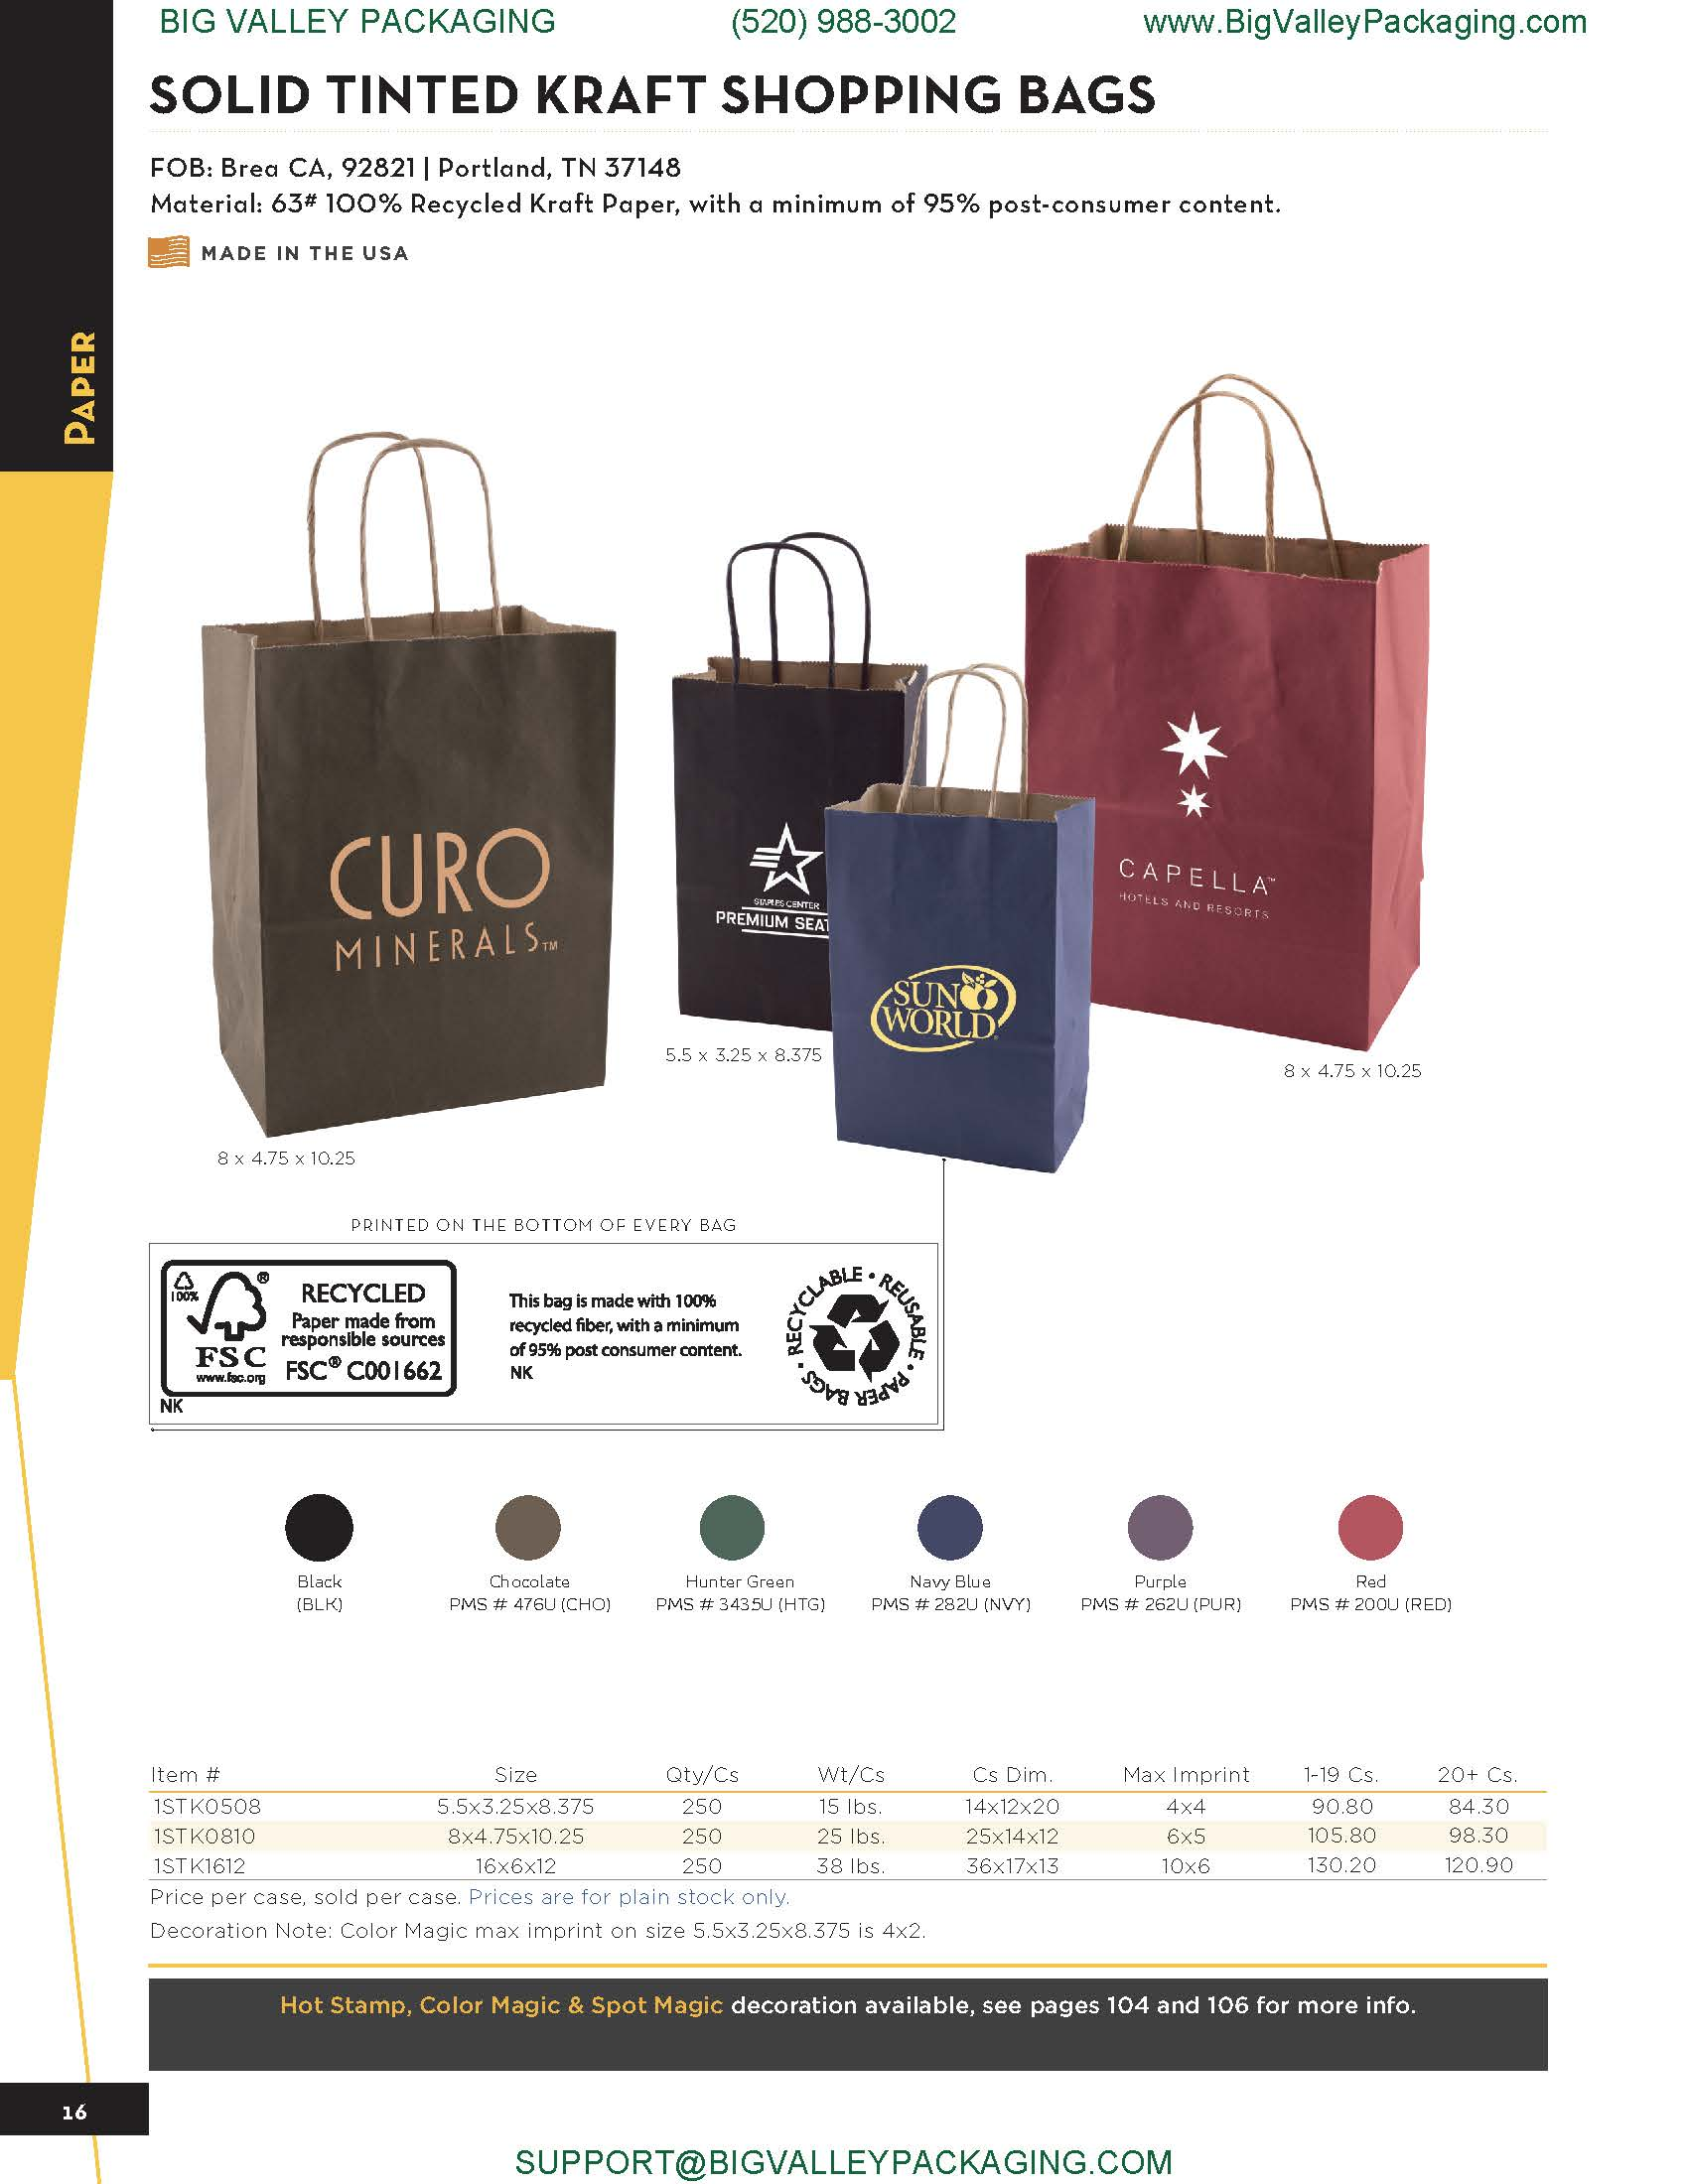 SOLID TINTED KRAFT PAPER SHOPPING BAGS